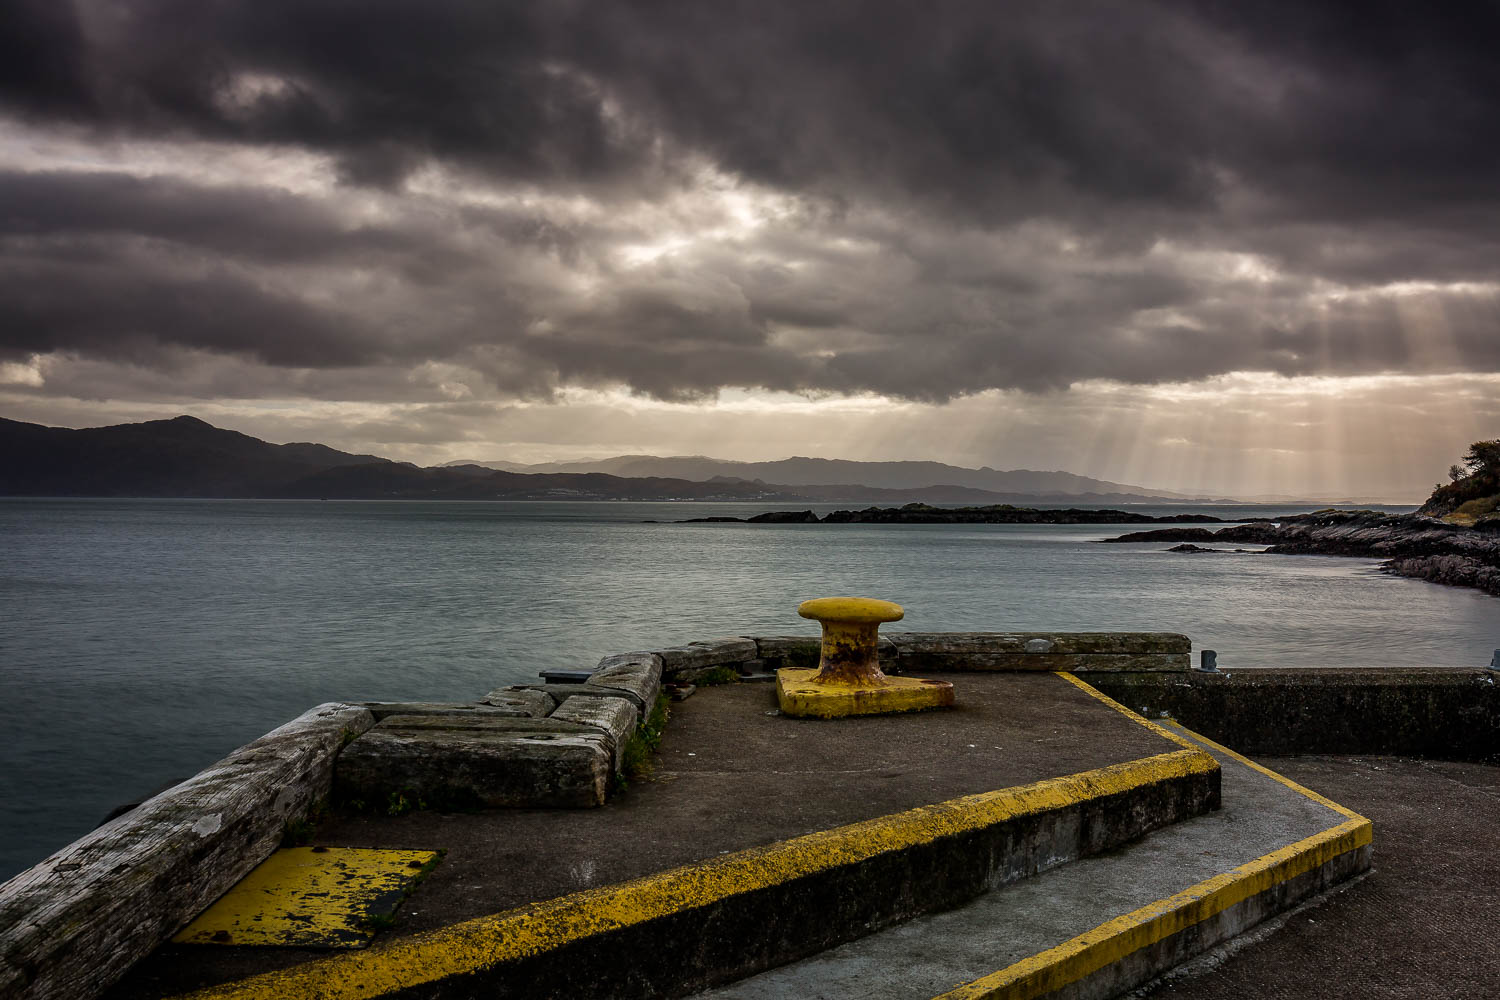 Crepuscular Rays over Mallaig, looking from Armadale Pier.